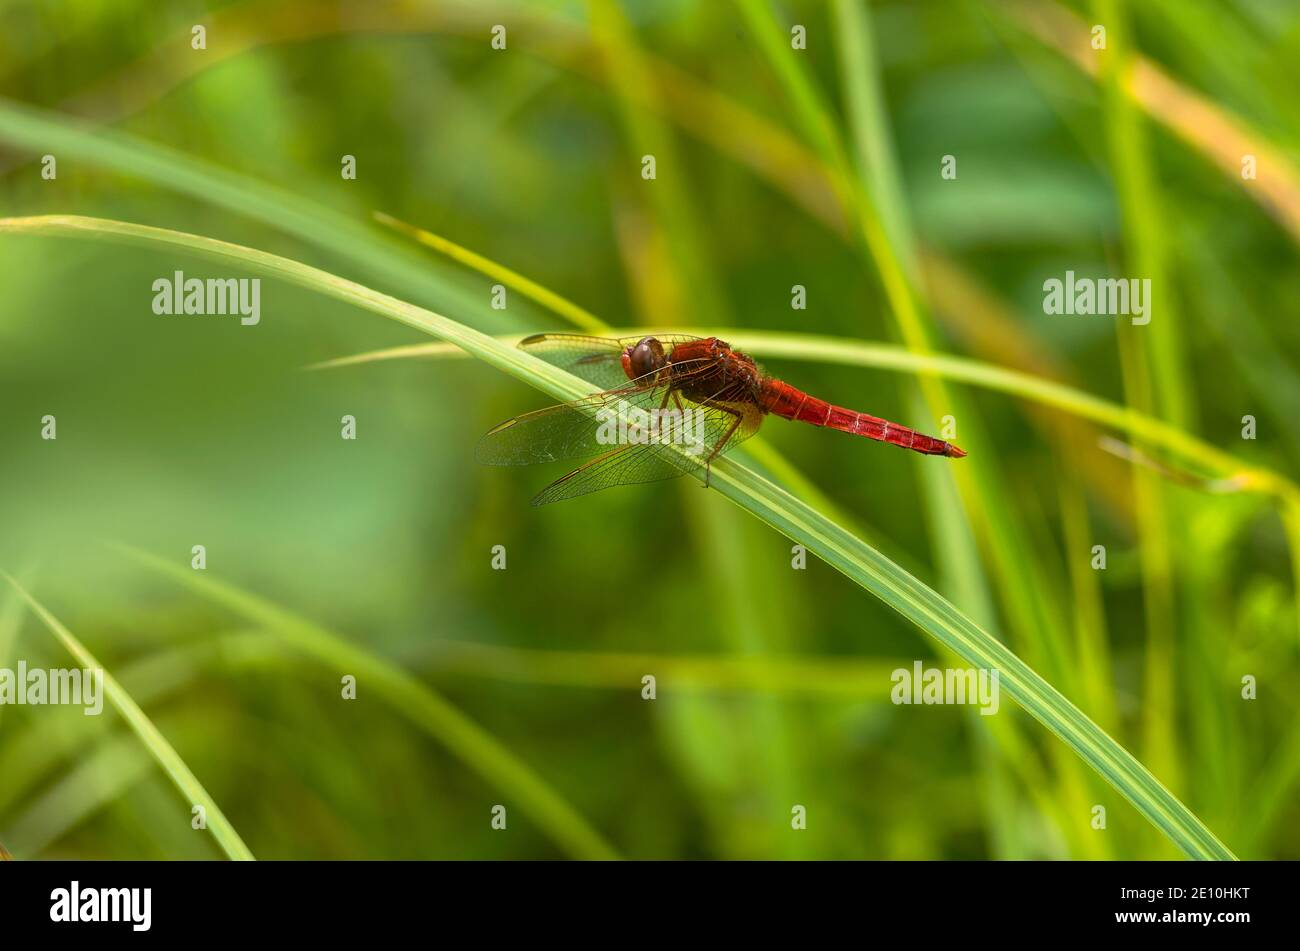 Male Scarlet dragonfly (Crocothemis erythraea)  sitting on a leaf of grass Stock Photo